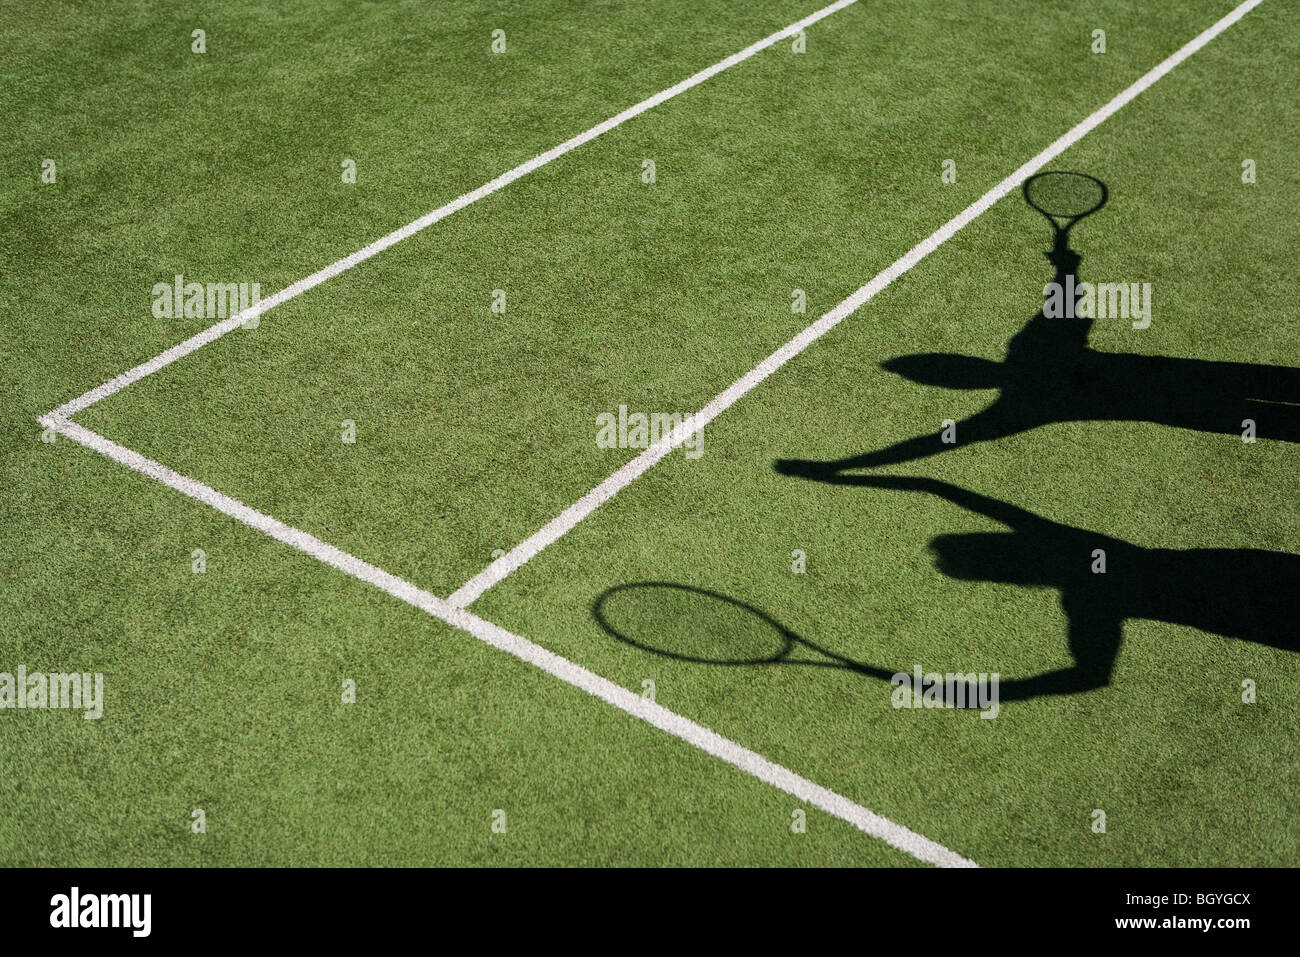 Shadow of tennis players raising clasped hands in celebration - Stock Image